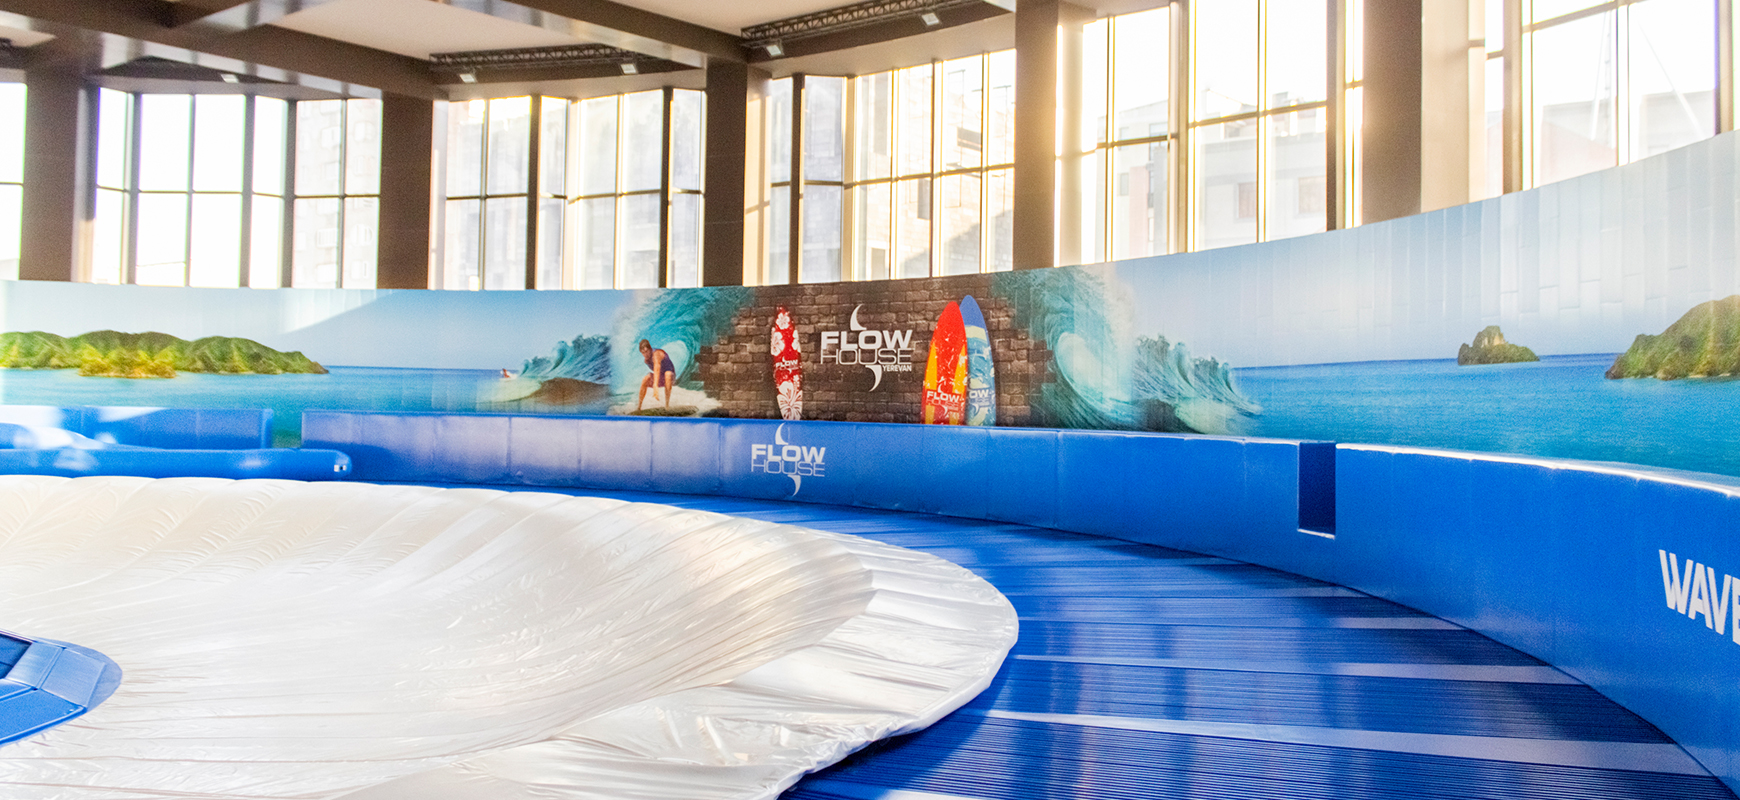 Flow House arena graphics in large sizes made of opaque vinyl for decorating walls